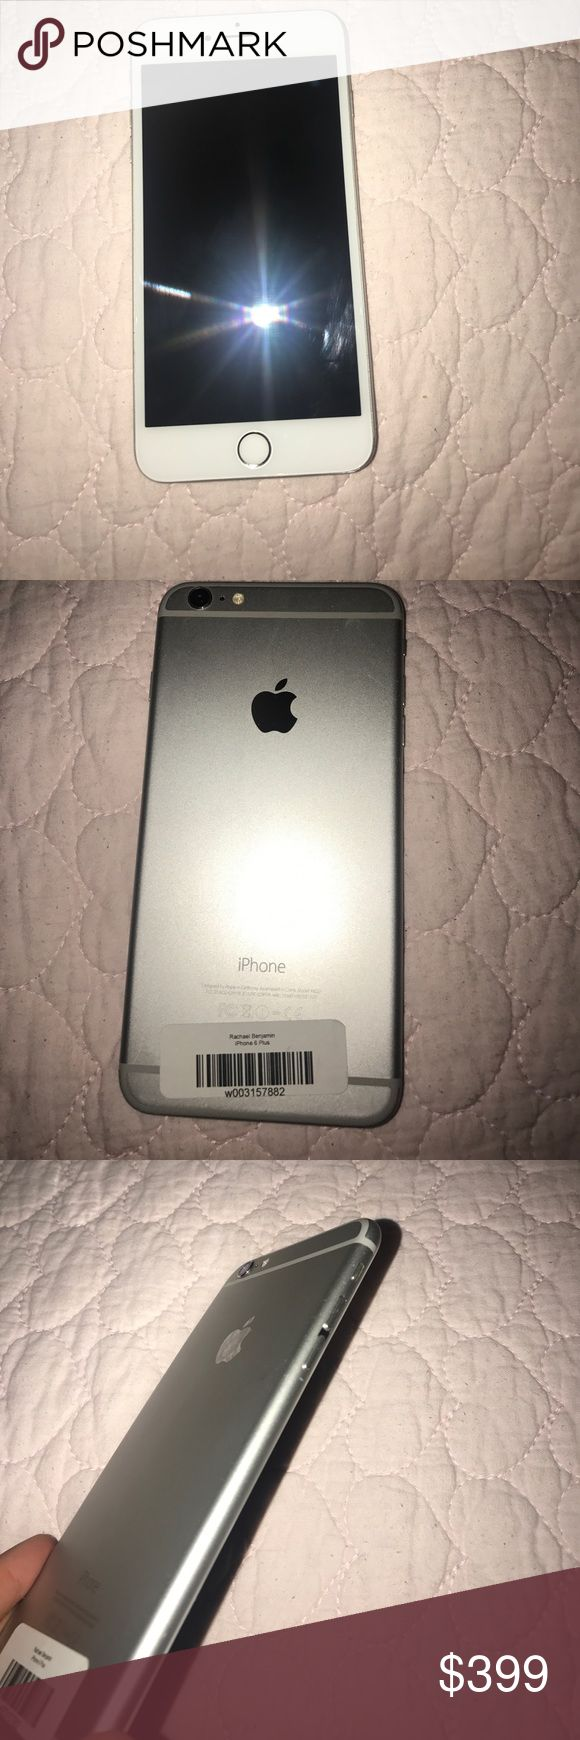 iPhone 6 Plus This is a barely used iPhone 6 Plus, I upgraded to the 7 Plus so I need to sell this phone. Everything works perfectly no damages at all, if you are not satifsfied feel free to send it back. This is an AT&T iPhone 6 Plus! Just add a SIM card. Apple Other